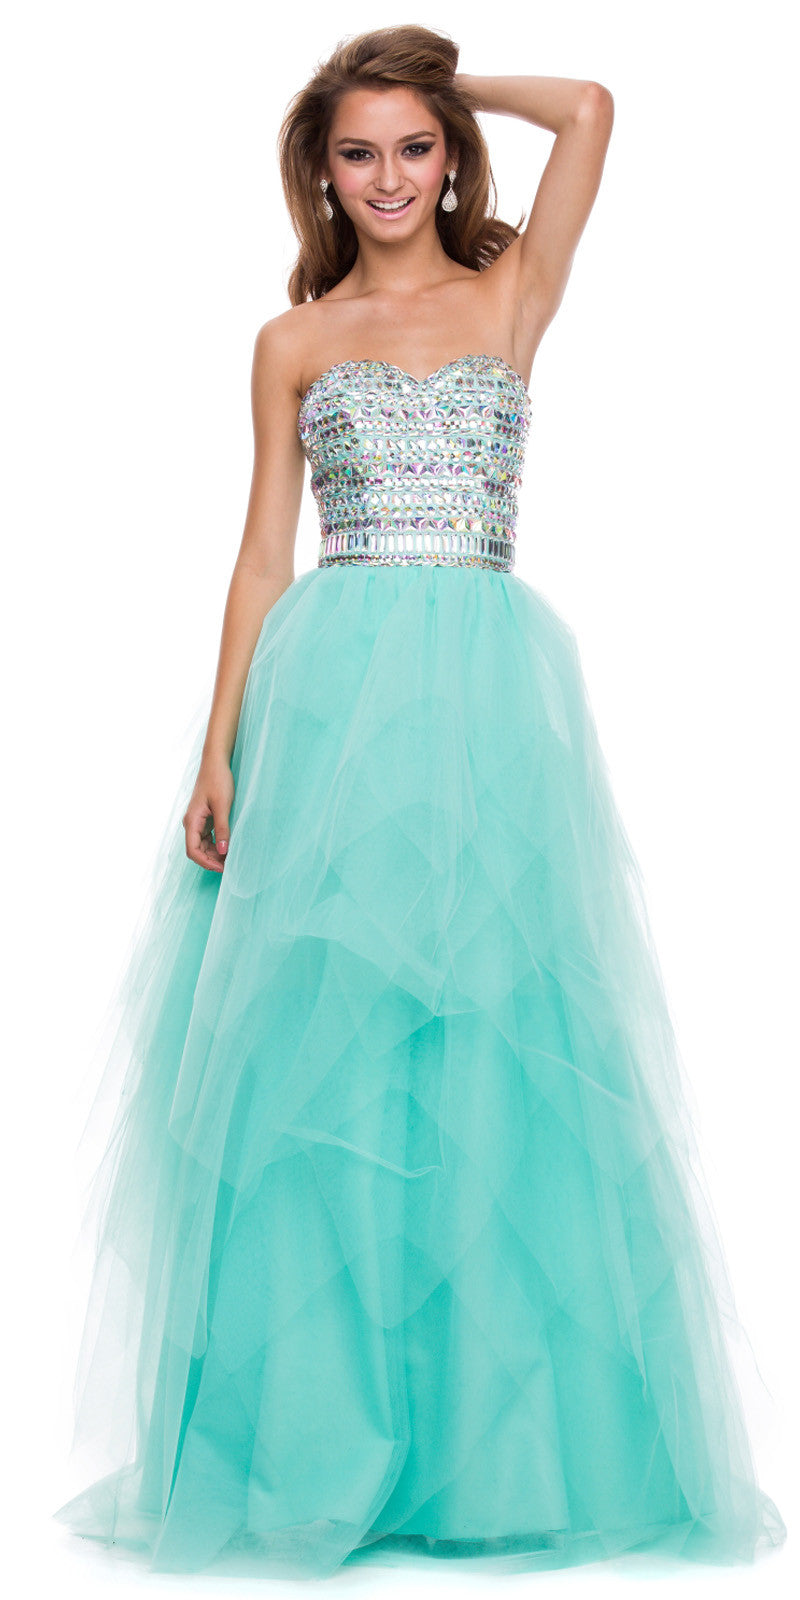 Strapless Bling Top Prom Gown Baby Pink Tulle Skirt Sweetheart ...